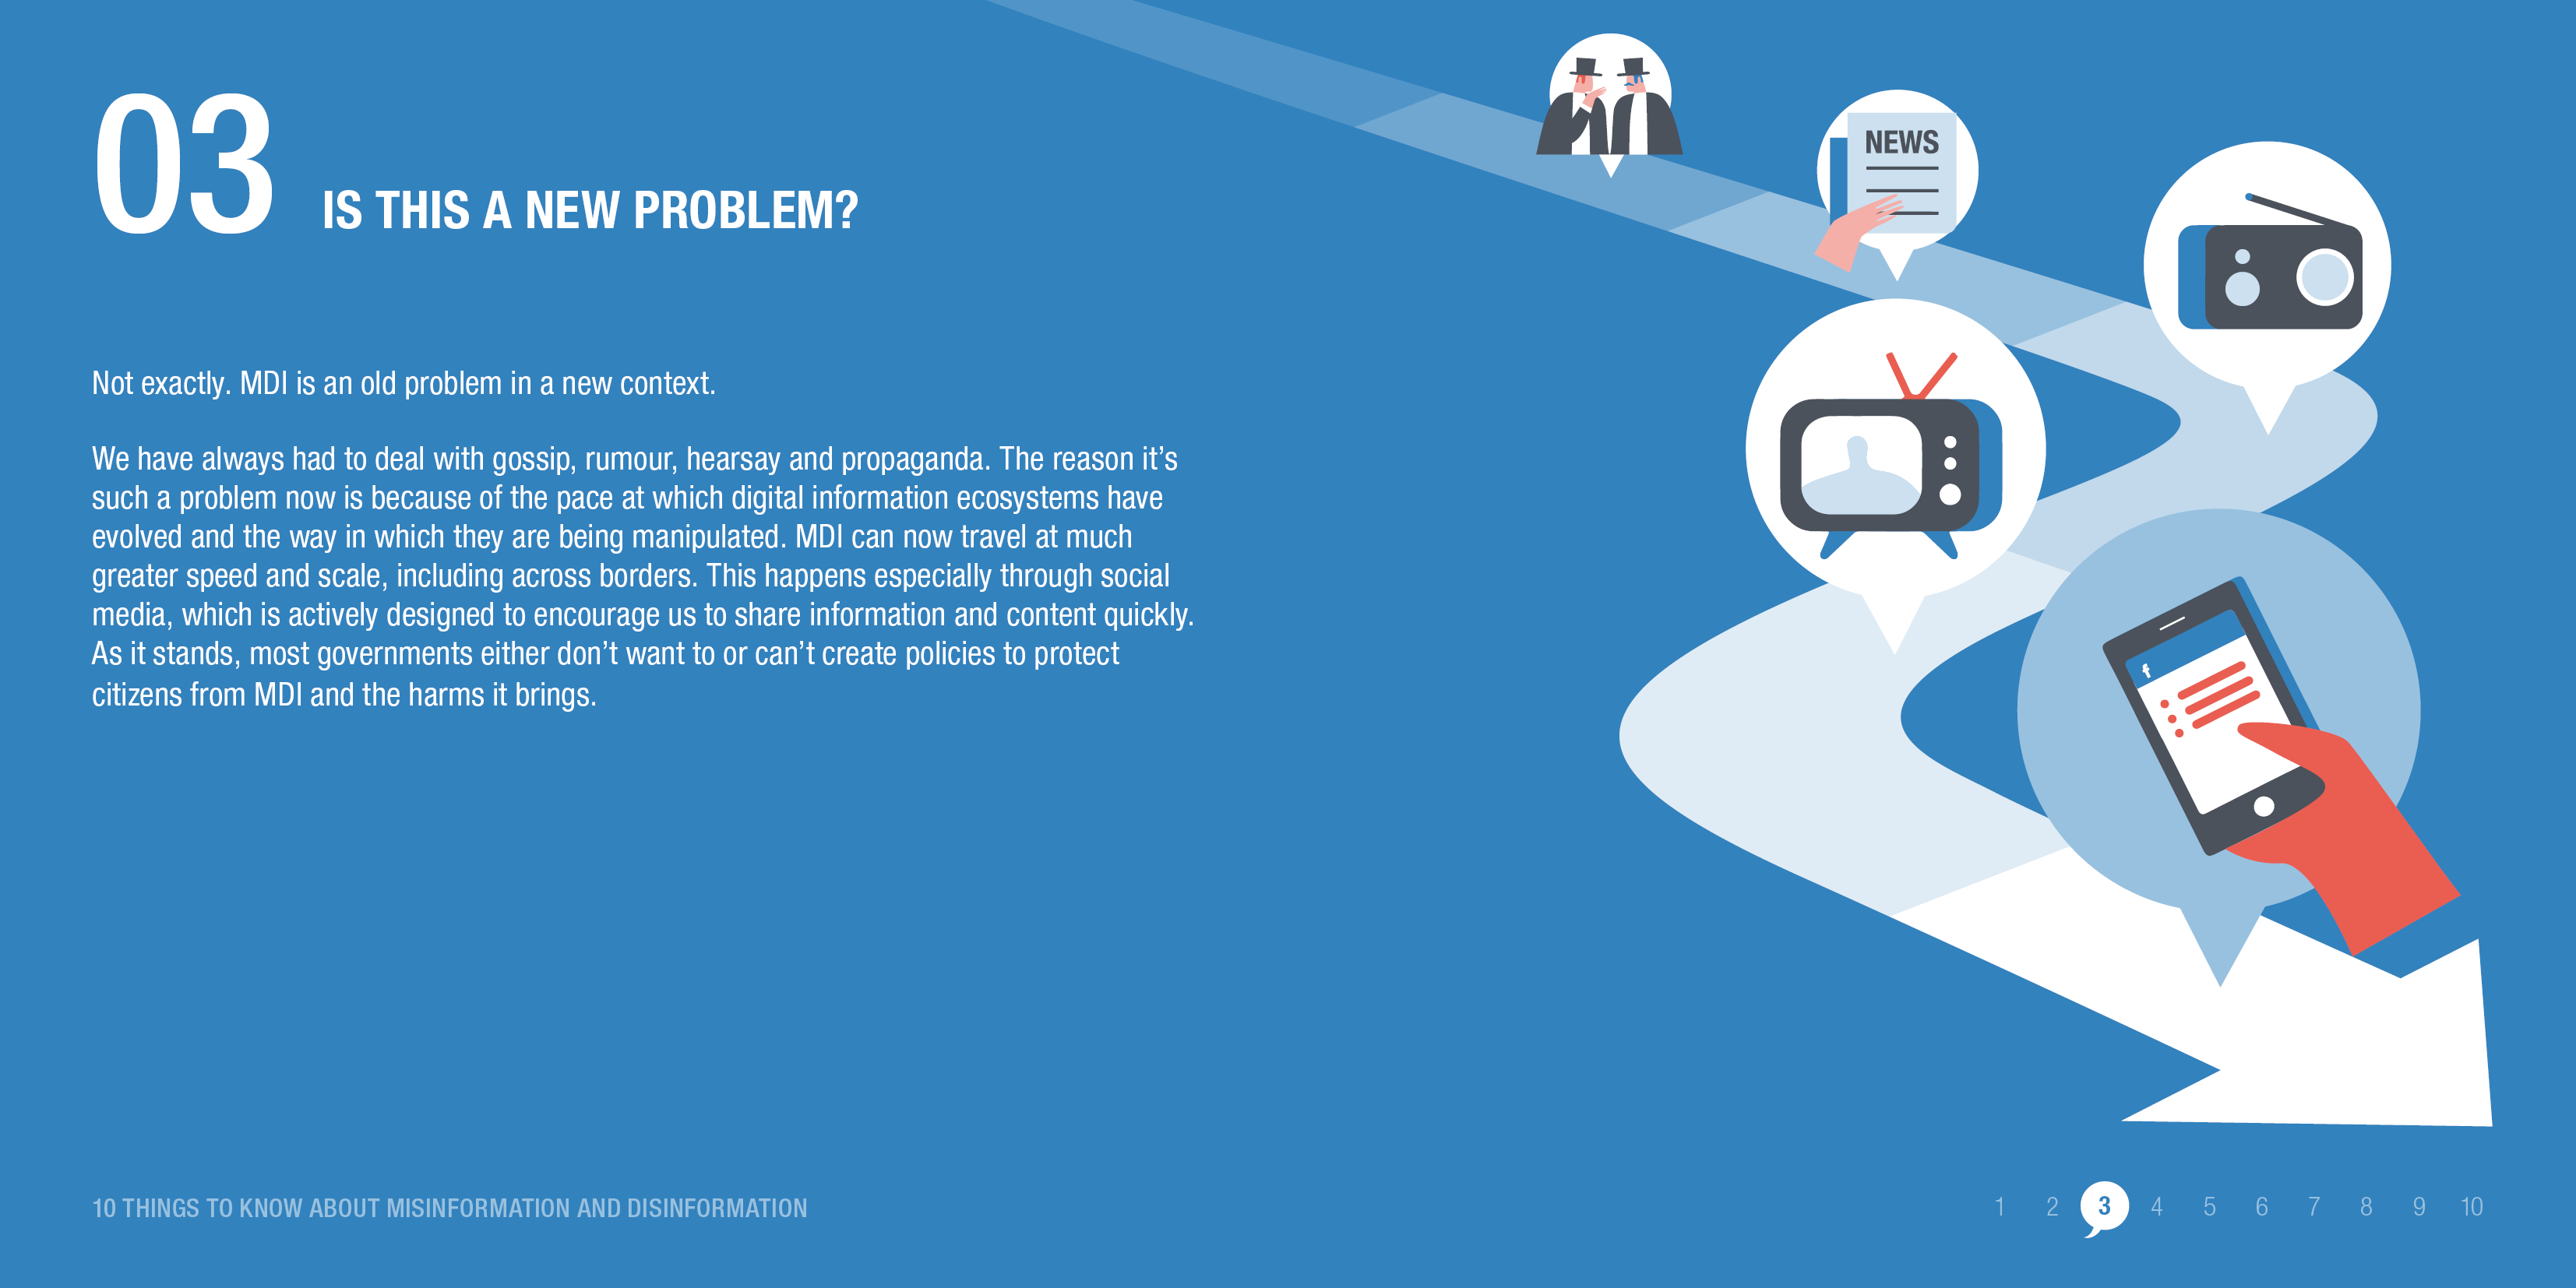 Digital technology has given new prominence to the old problem of misinformation. © ODI 2020